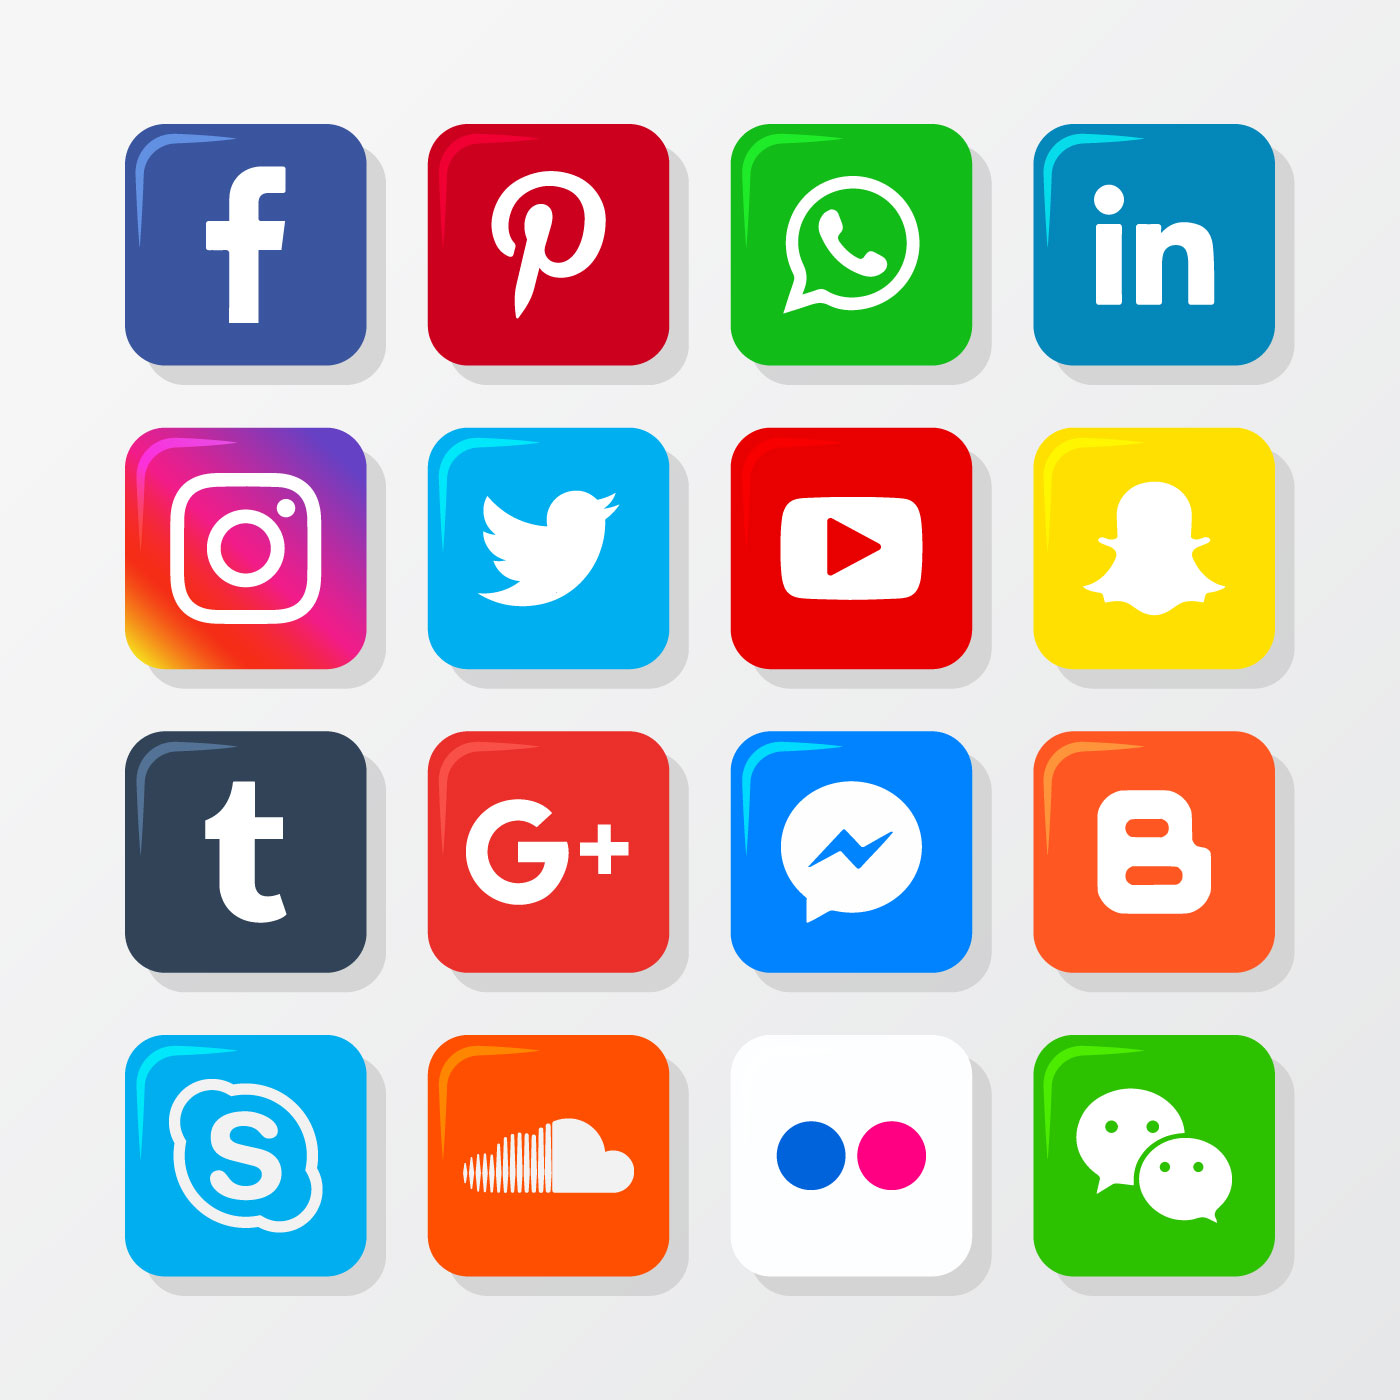 vector-social-media-icon-set.jpg